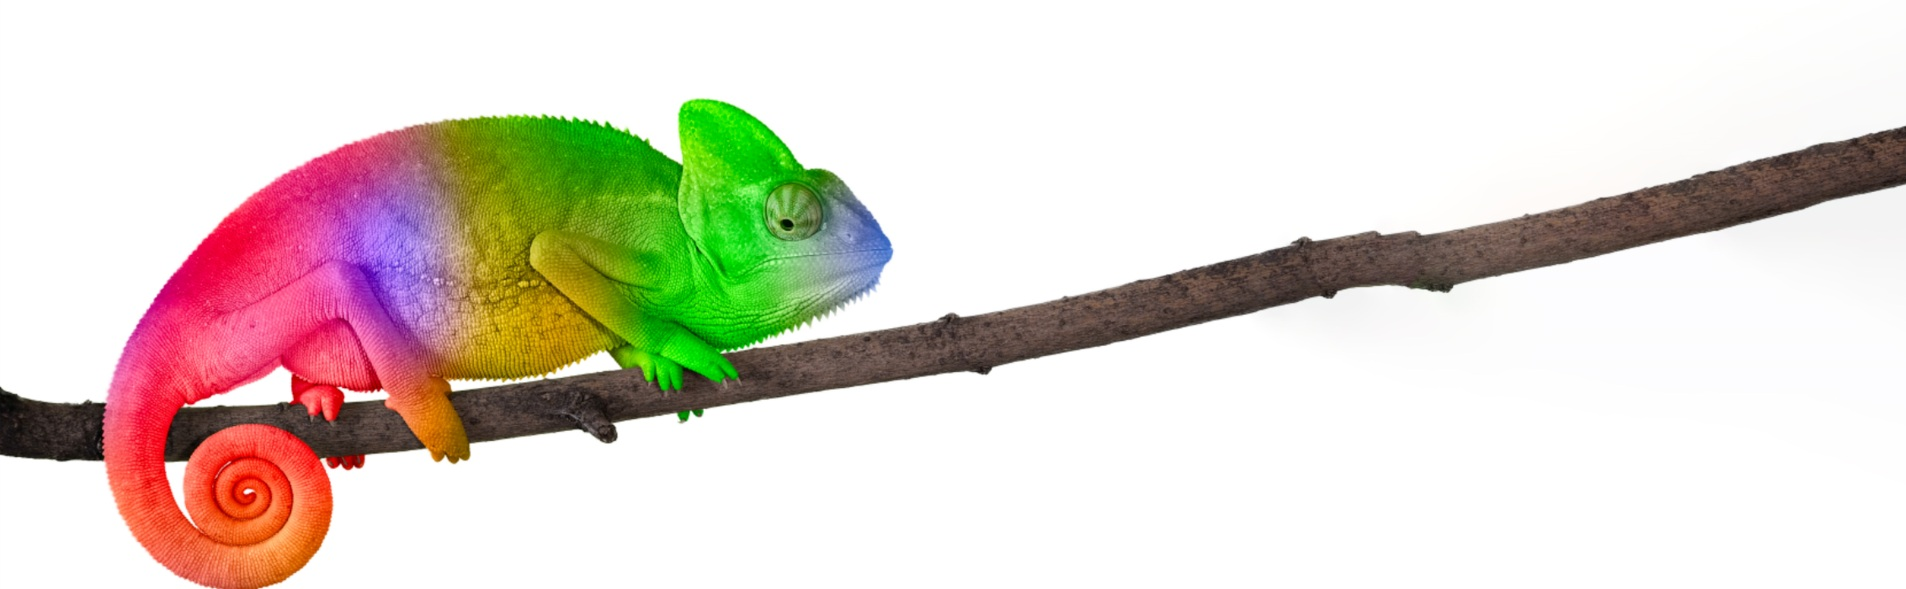 Cameleon+extended+branch+cropped.jpg